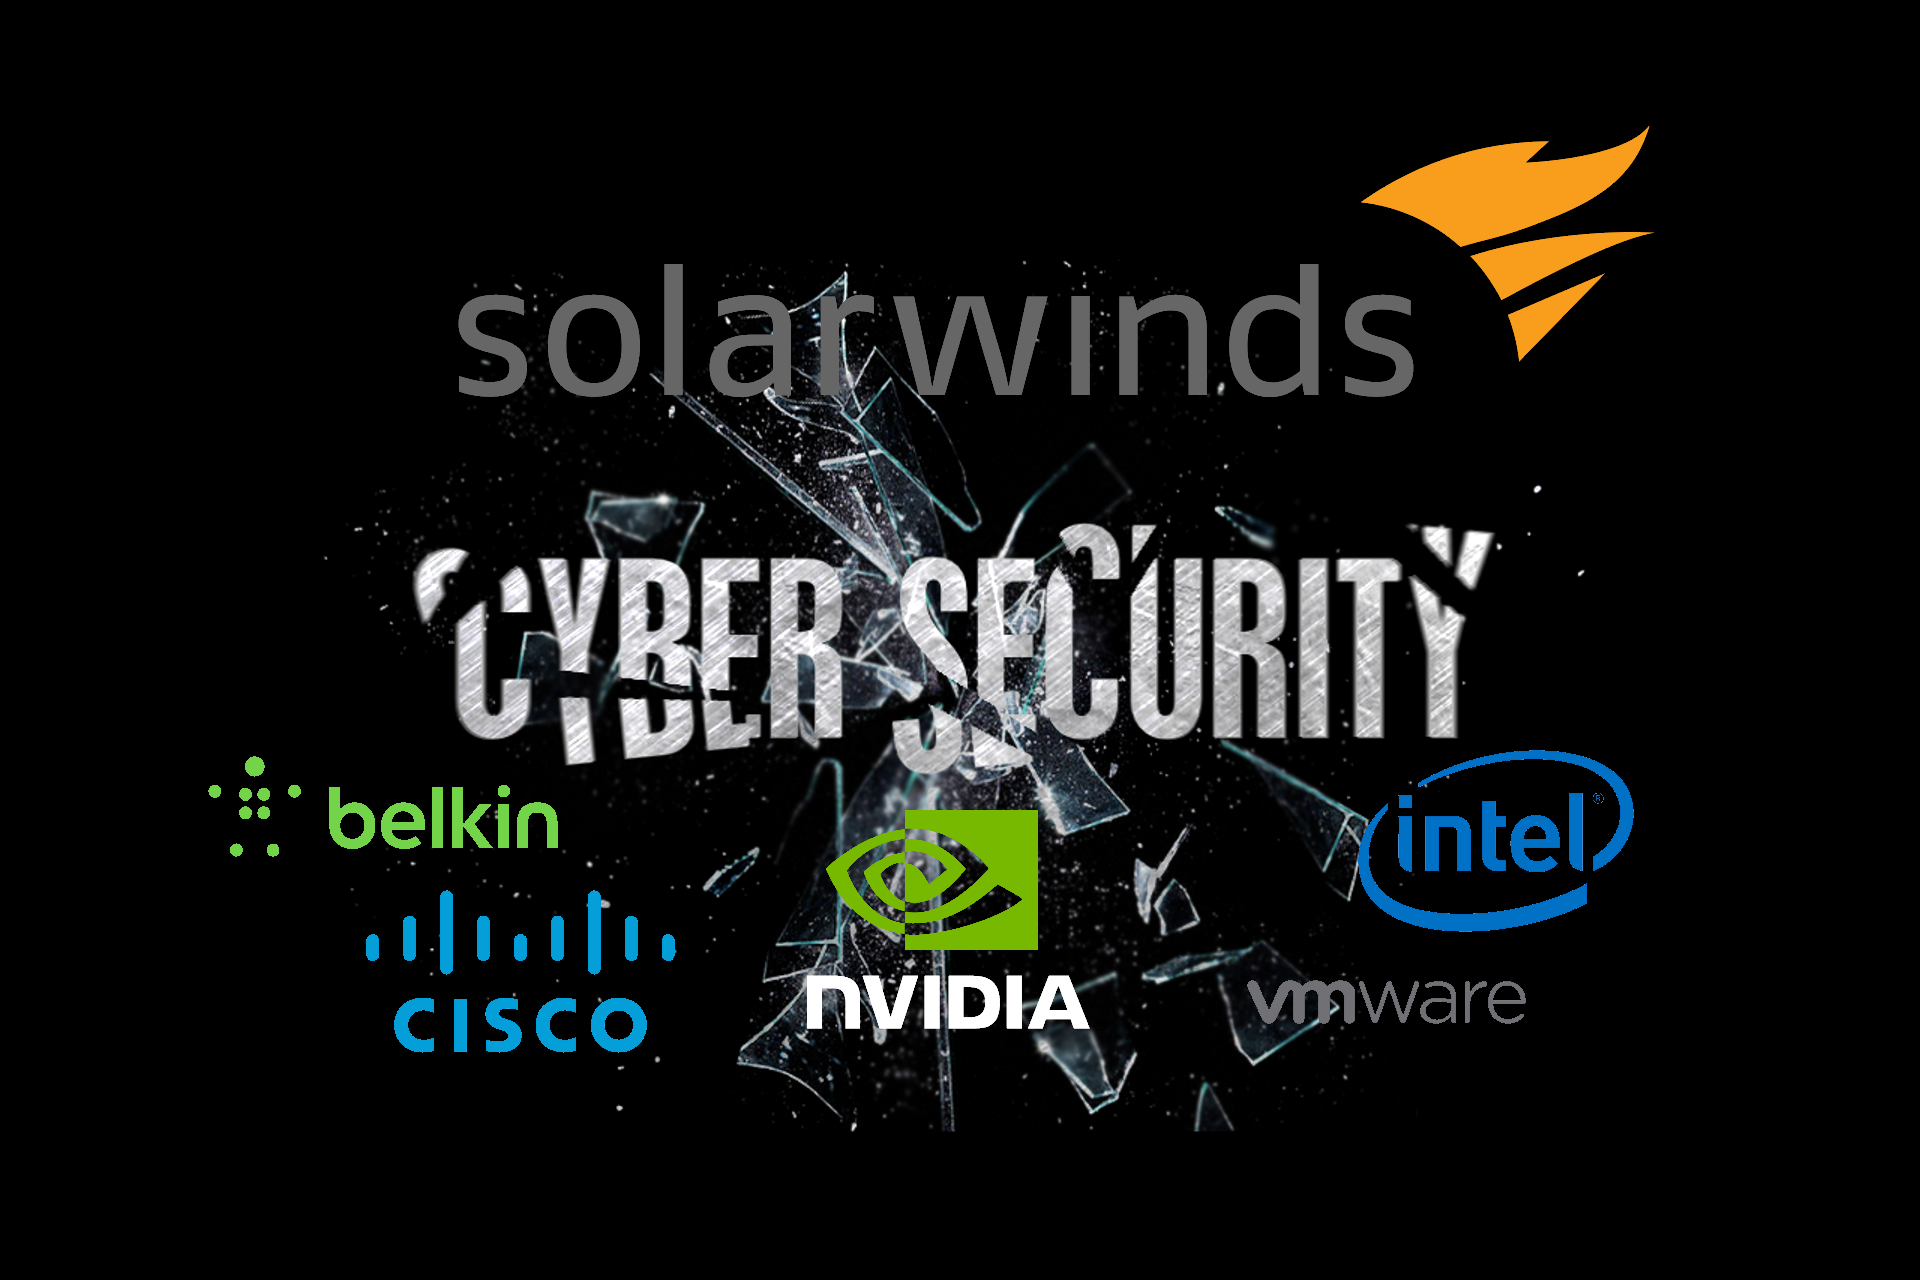 atak-hakerow-belkin-cisco-intel-nvidia-vmware-solarwinds-orion-sunburst